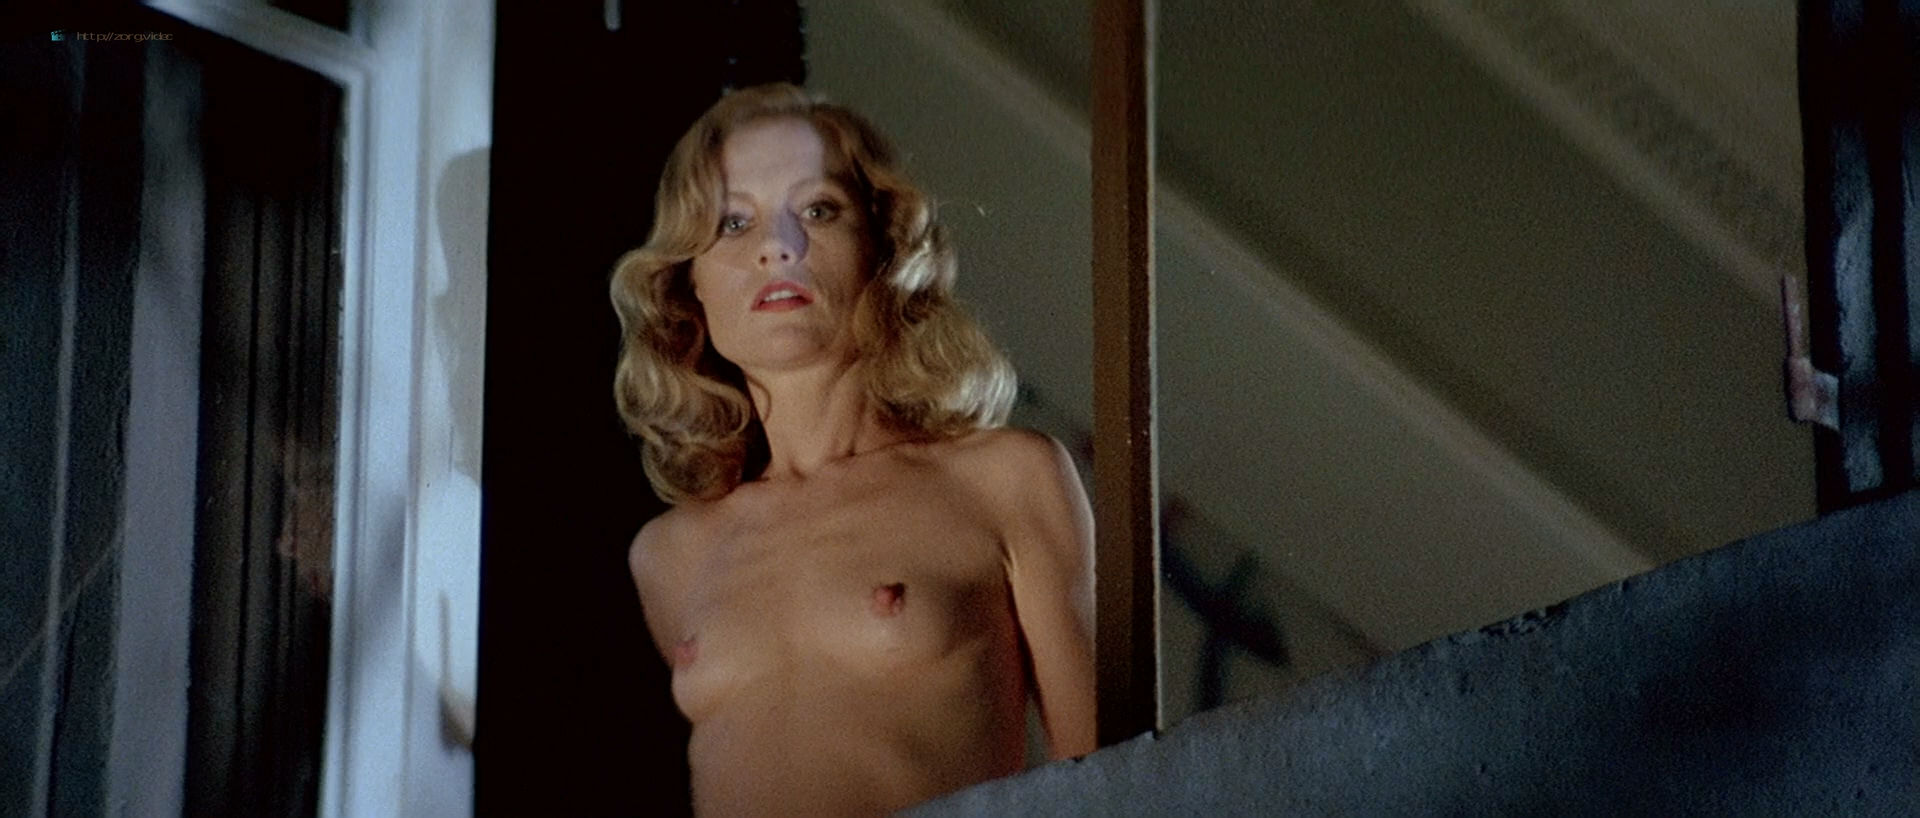 Isabelle Huppert nude topless and butt Elizabeth McGovern nude - The Bedroom Window (1987) HD 1080p BluRay (11)